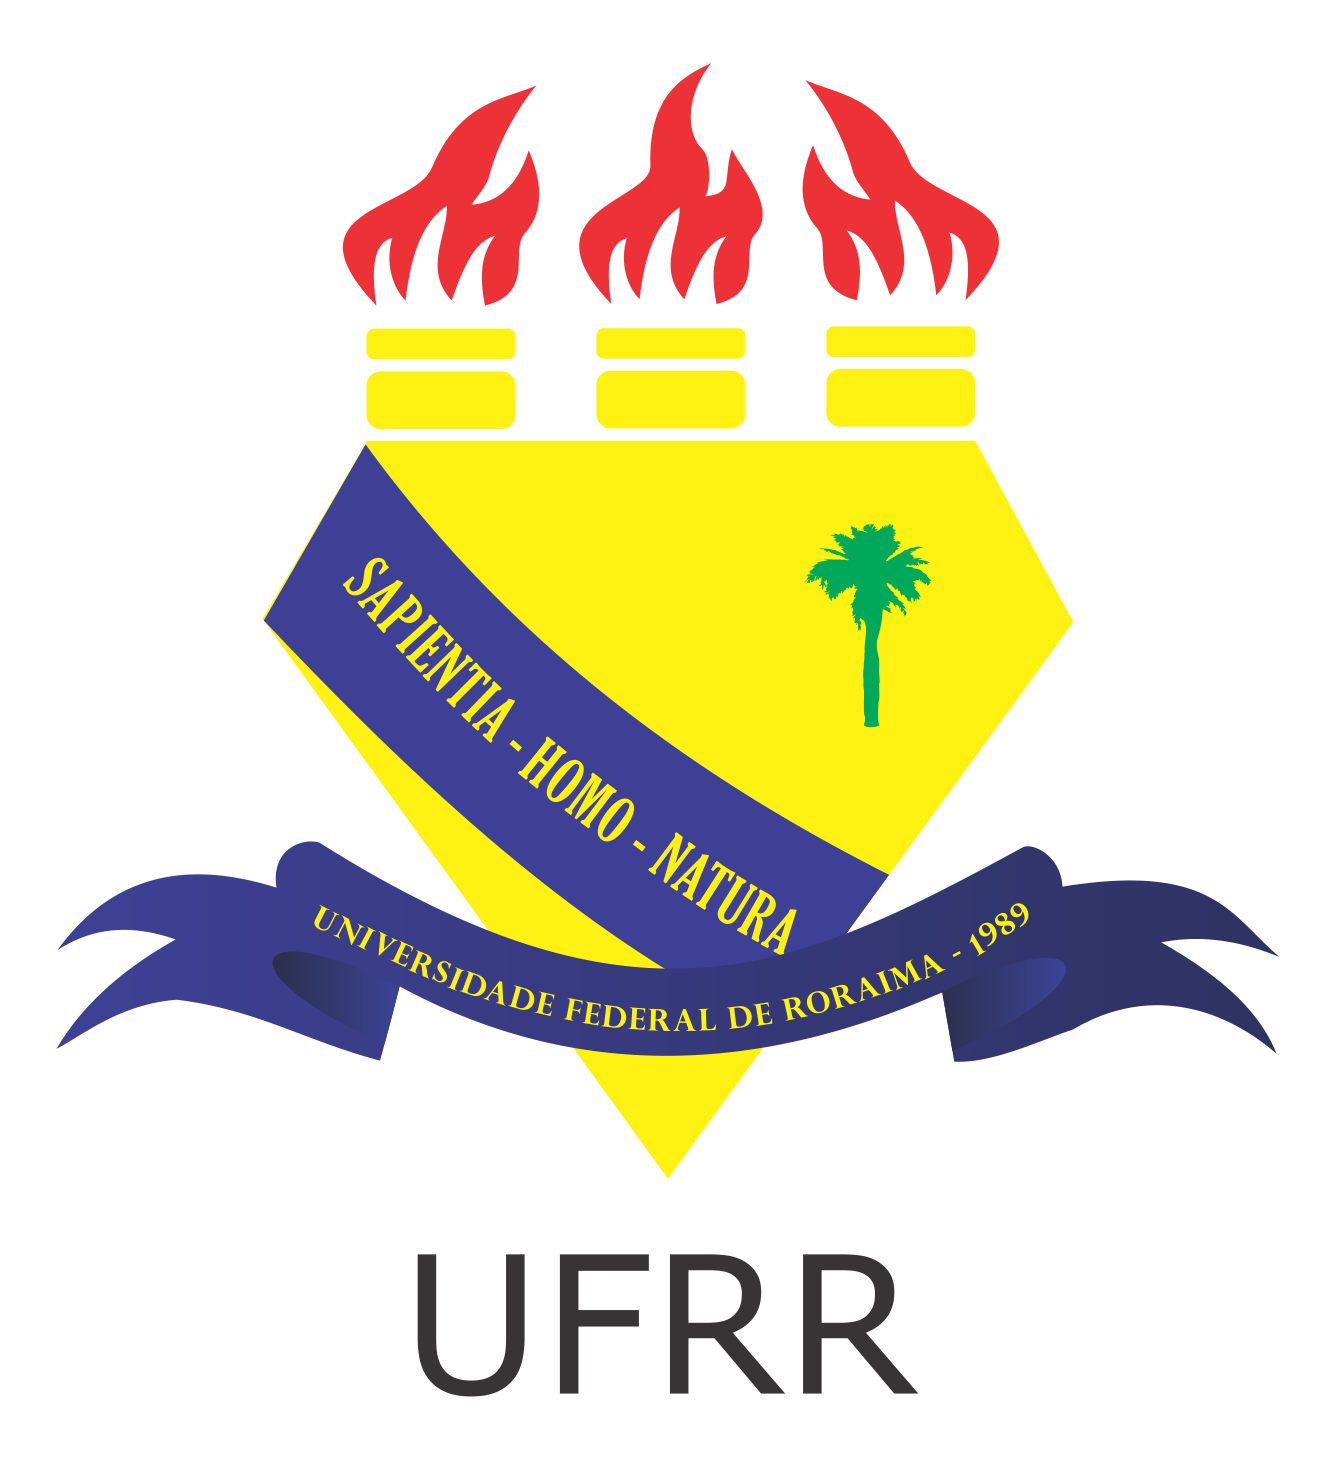 universidade-federal-de-roraima-ufrr